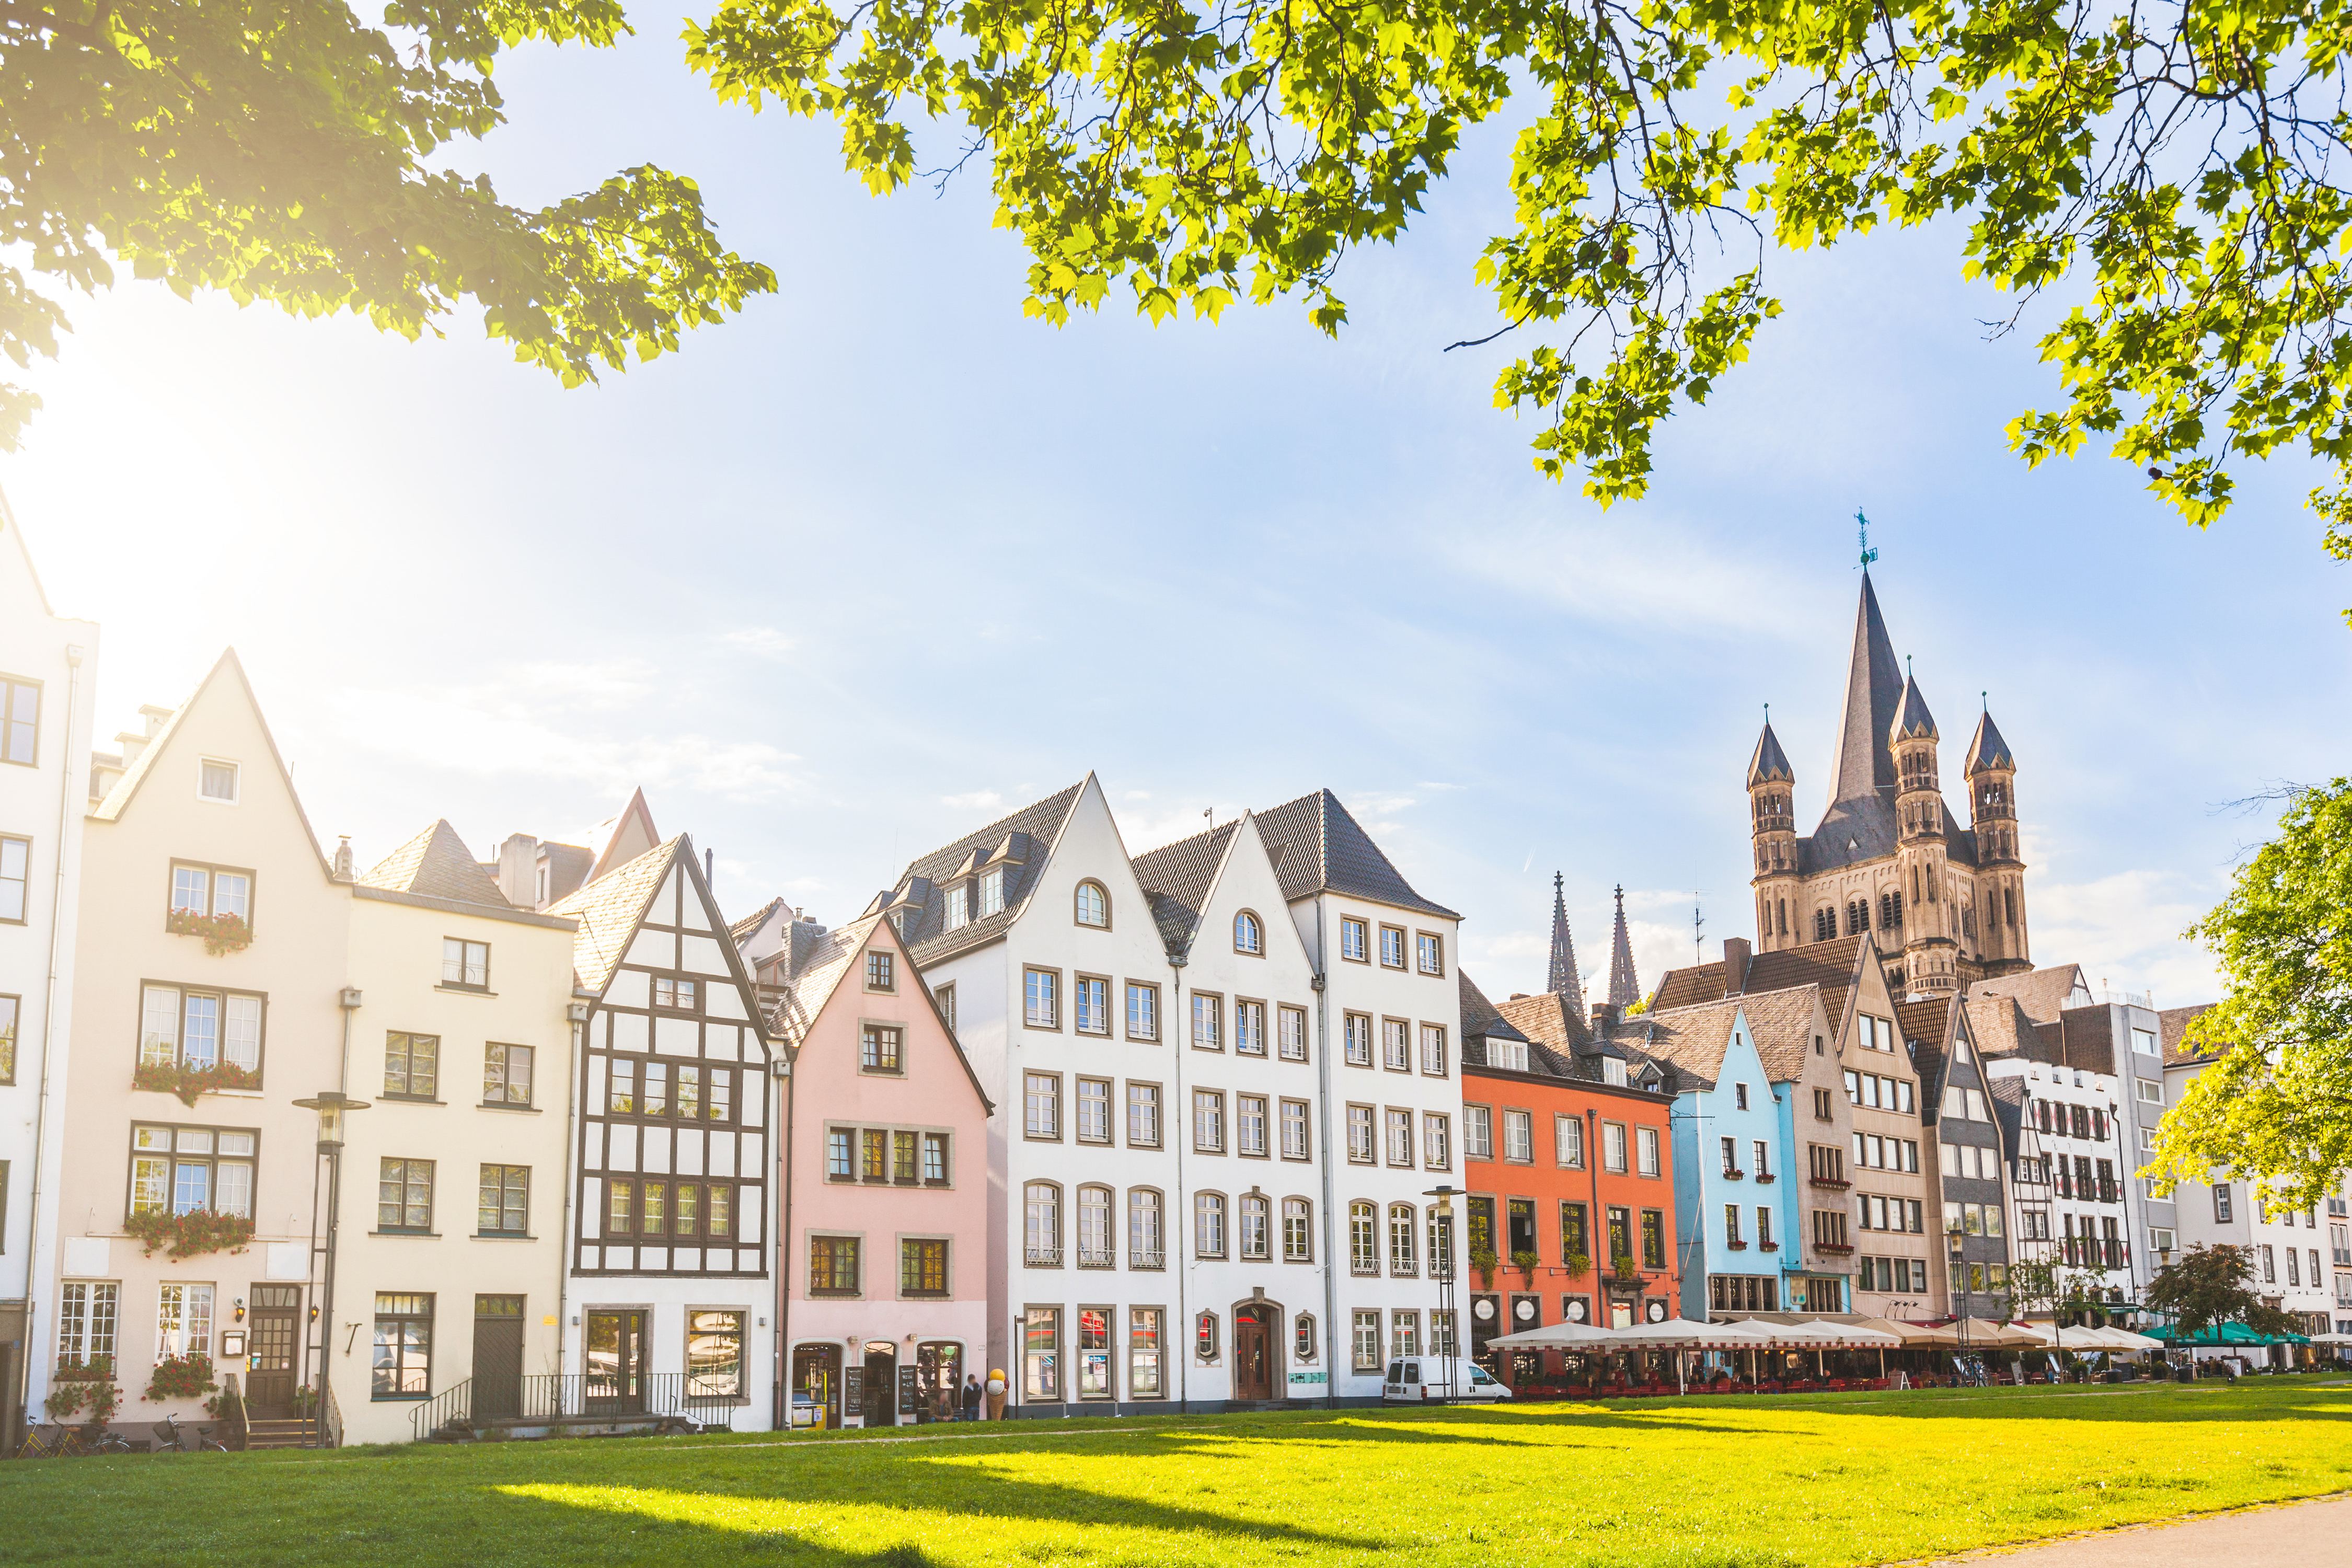 Houses and park in Cologne, Germany. Many of them are colourful, they are facing a public park with green grass and some trees. There is a bell tower on background. Travel and architecture concepts.